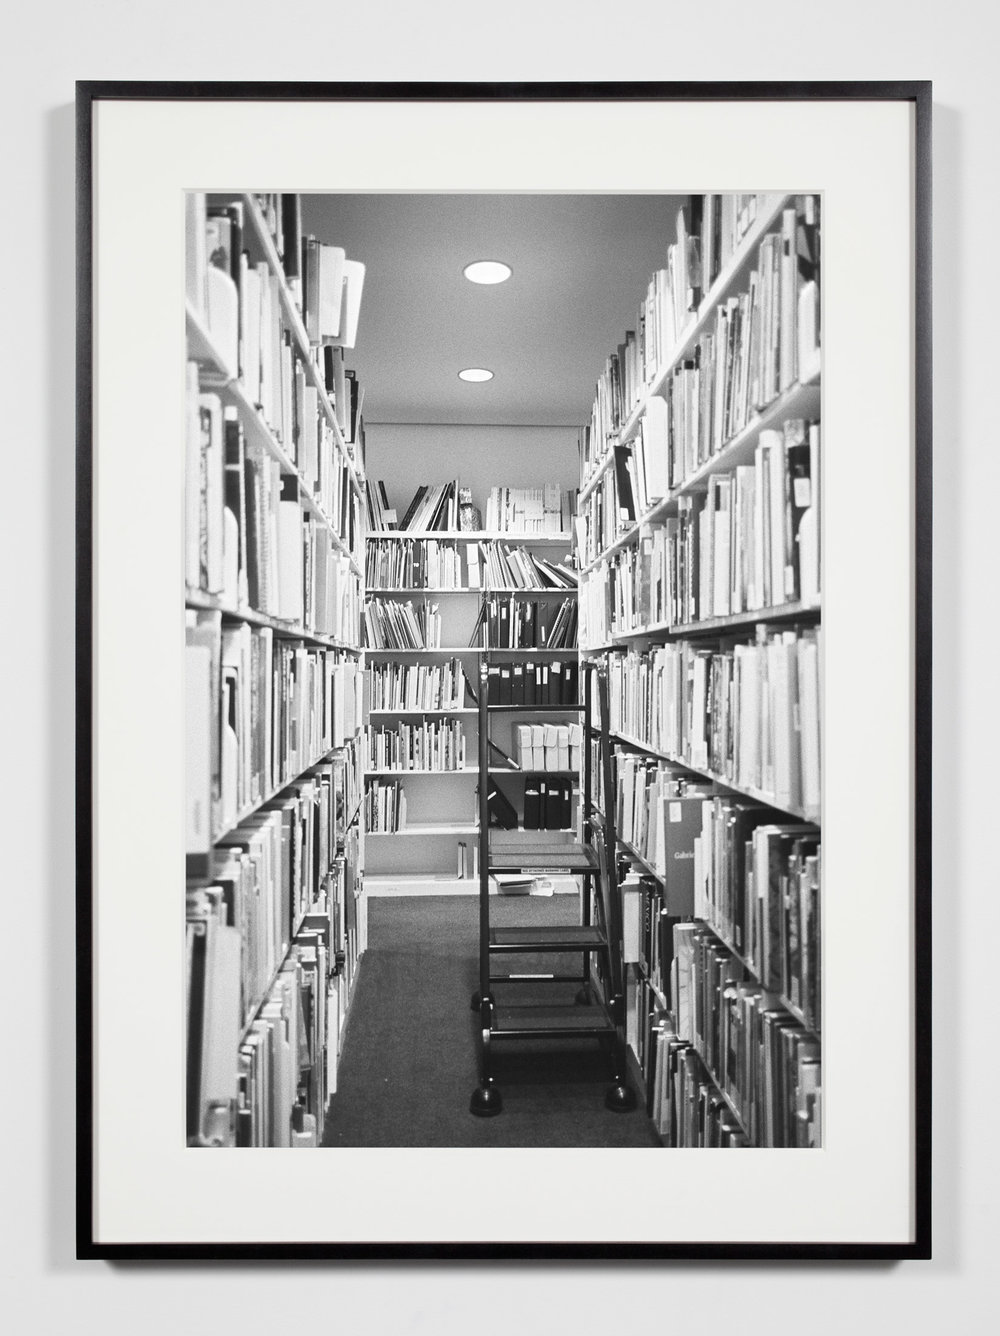 Museum Library Stacks, Washington, District of Columbia, August 18, 2008   2011  Epson Ultrachrome K3 archival ink jet print on Hahnemühle Photo Rag paper  36 3/8 x 26 3/8 inches   Industrial Portraits, 2008–    A Diagram of Forces, 2011